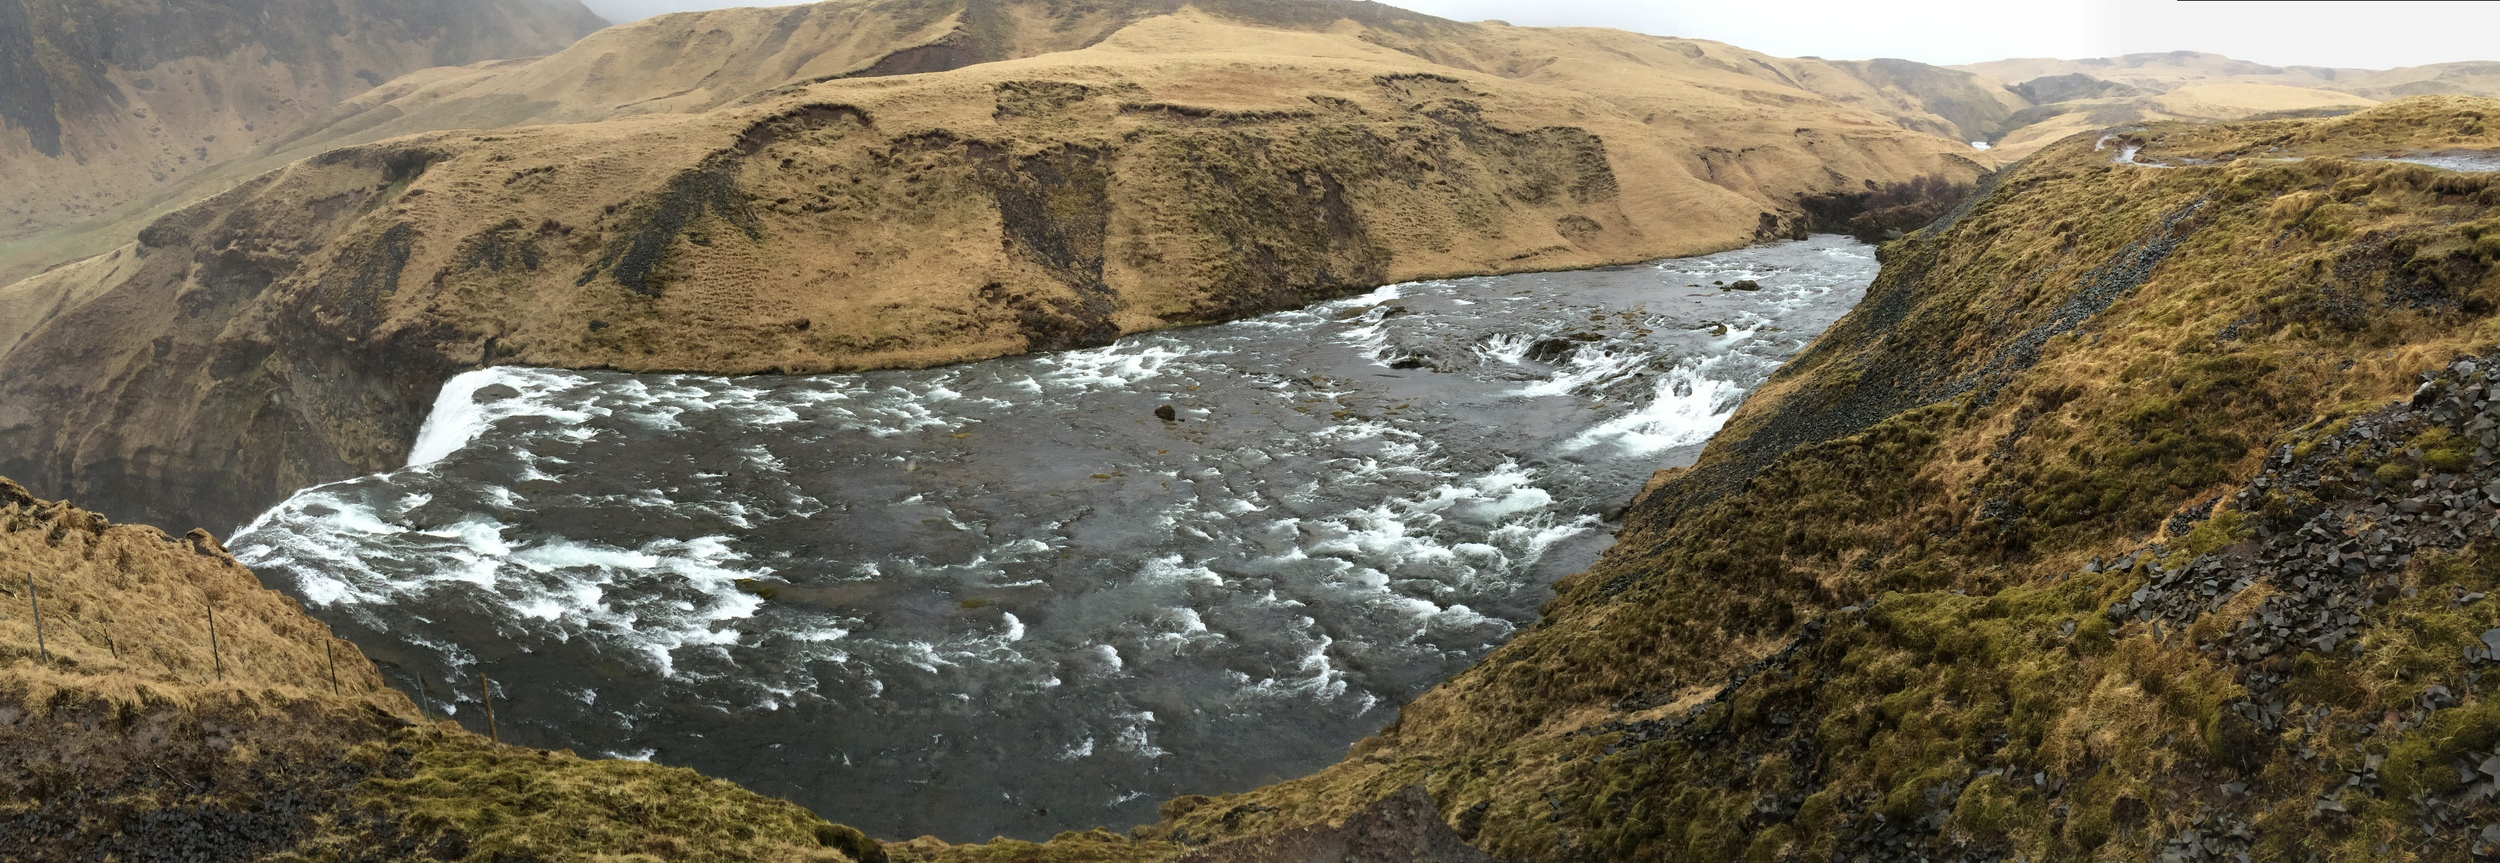 Skoga River, May 2015, near Skogafoss